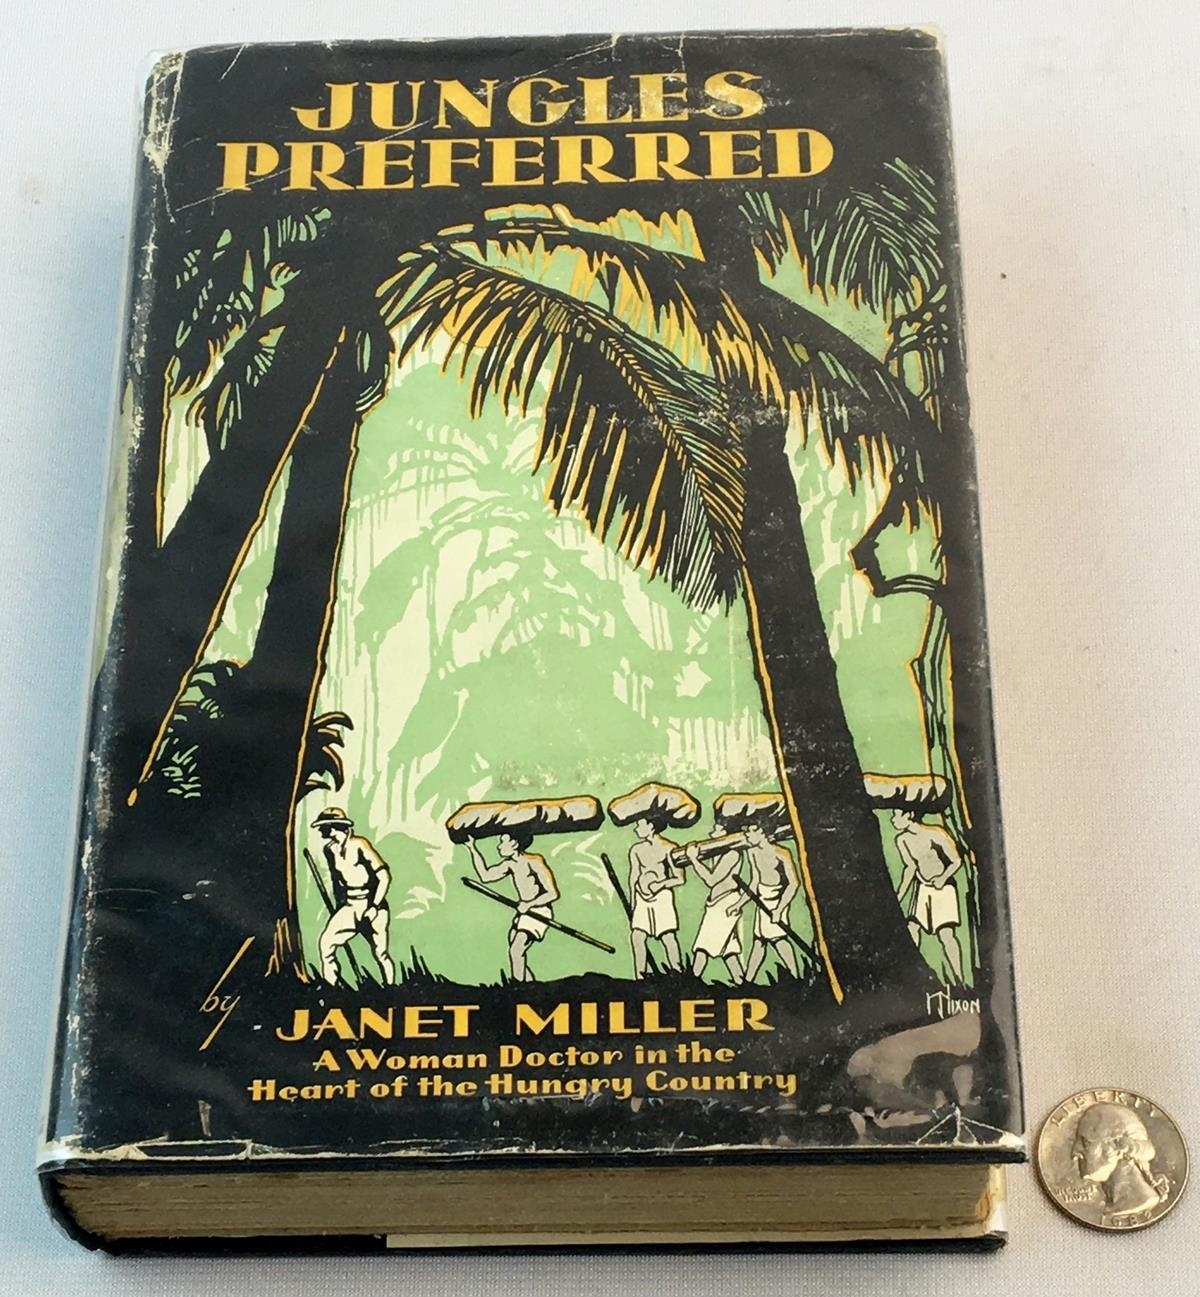 1931 Jungles Preferred by Janet Miller w/ Dust Jacket FIRST EDITION